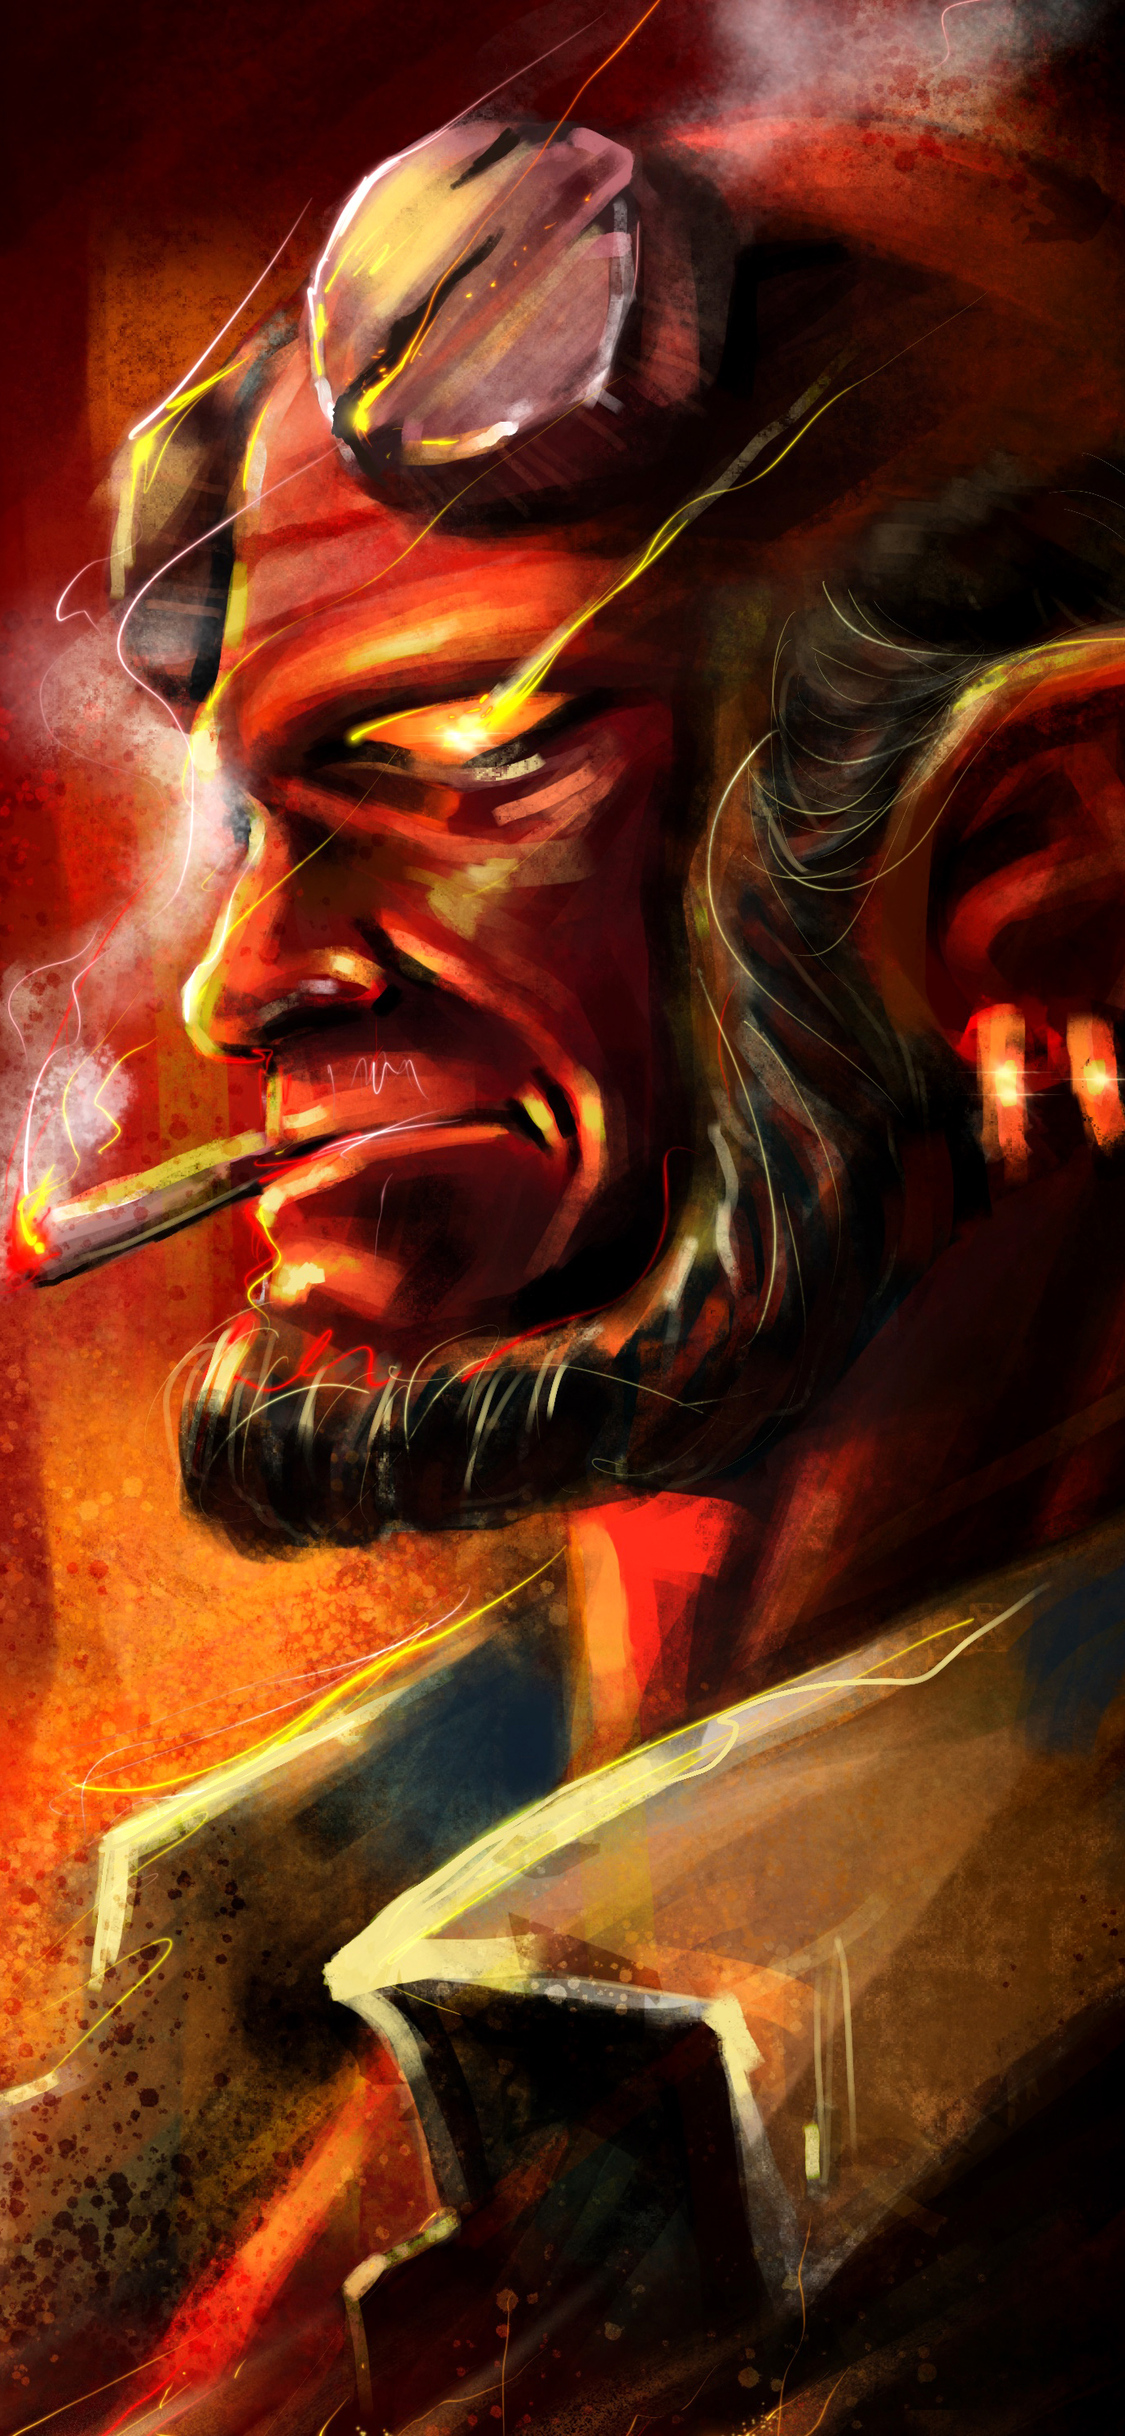 1125x2436 Hellboy Smoking Iphone Xs Iphone 10 Iphone X Hd 4k